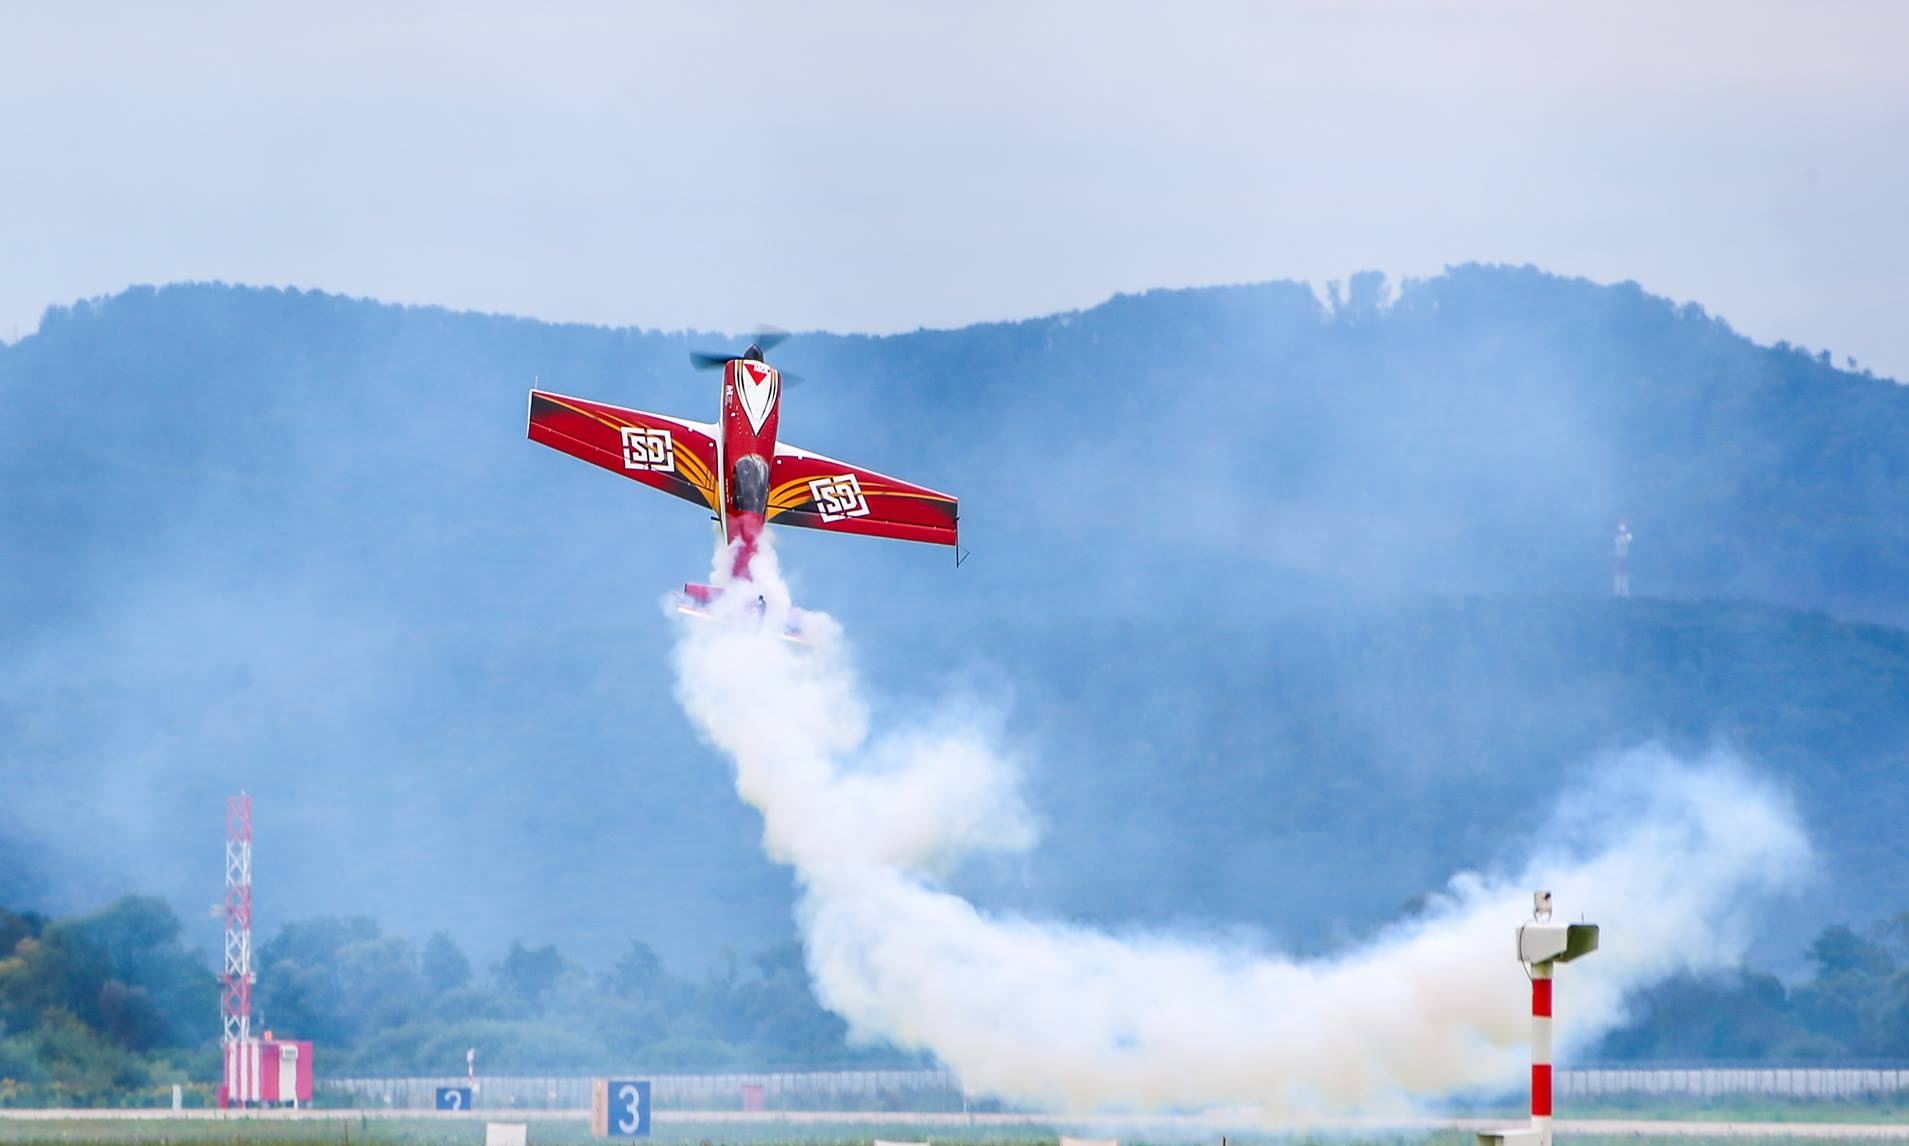 200 days to the greatest aviation event – we are starting Slovak International Air Fest SIAF 2015 | Slovak International Air Fest 2014 Airport Sliač